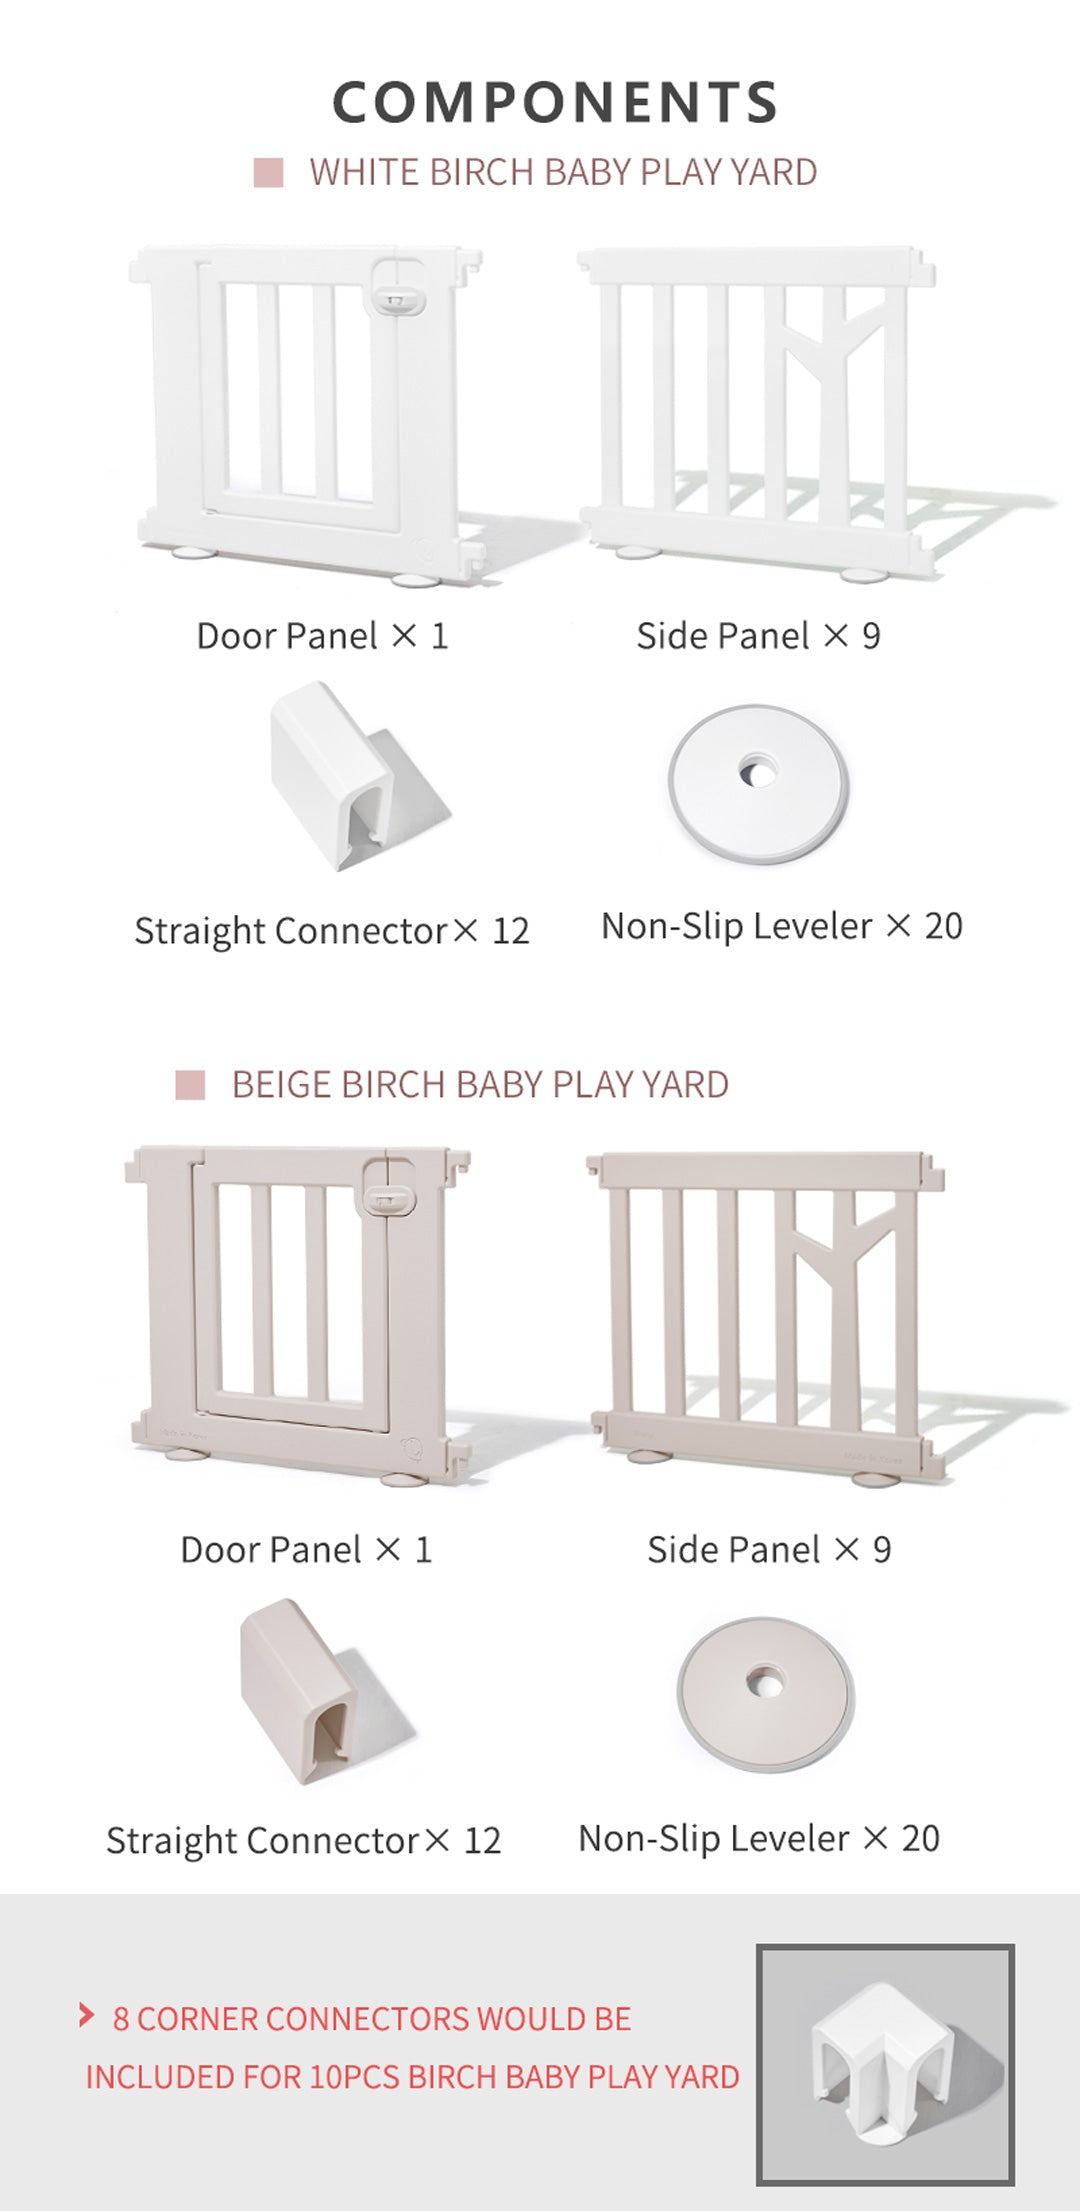 Birch Baby Play Yard Components